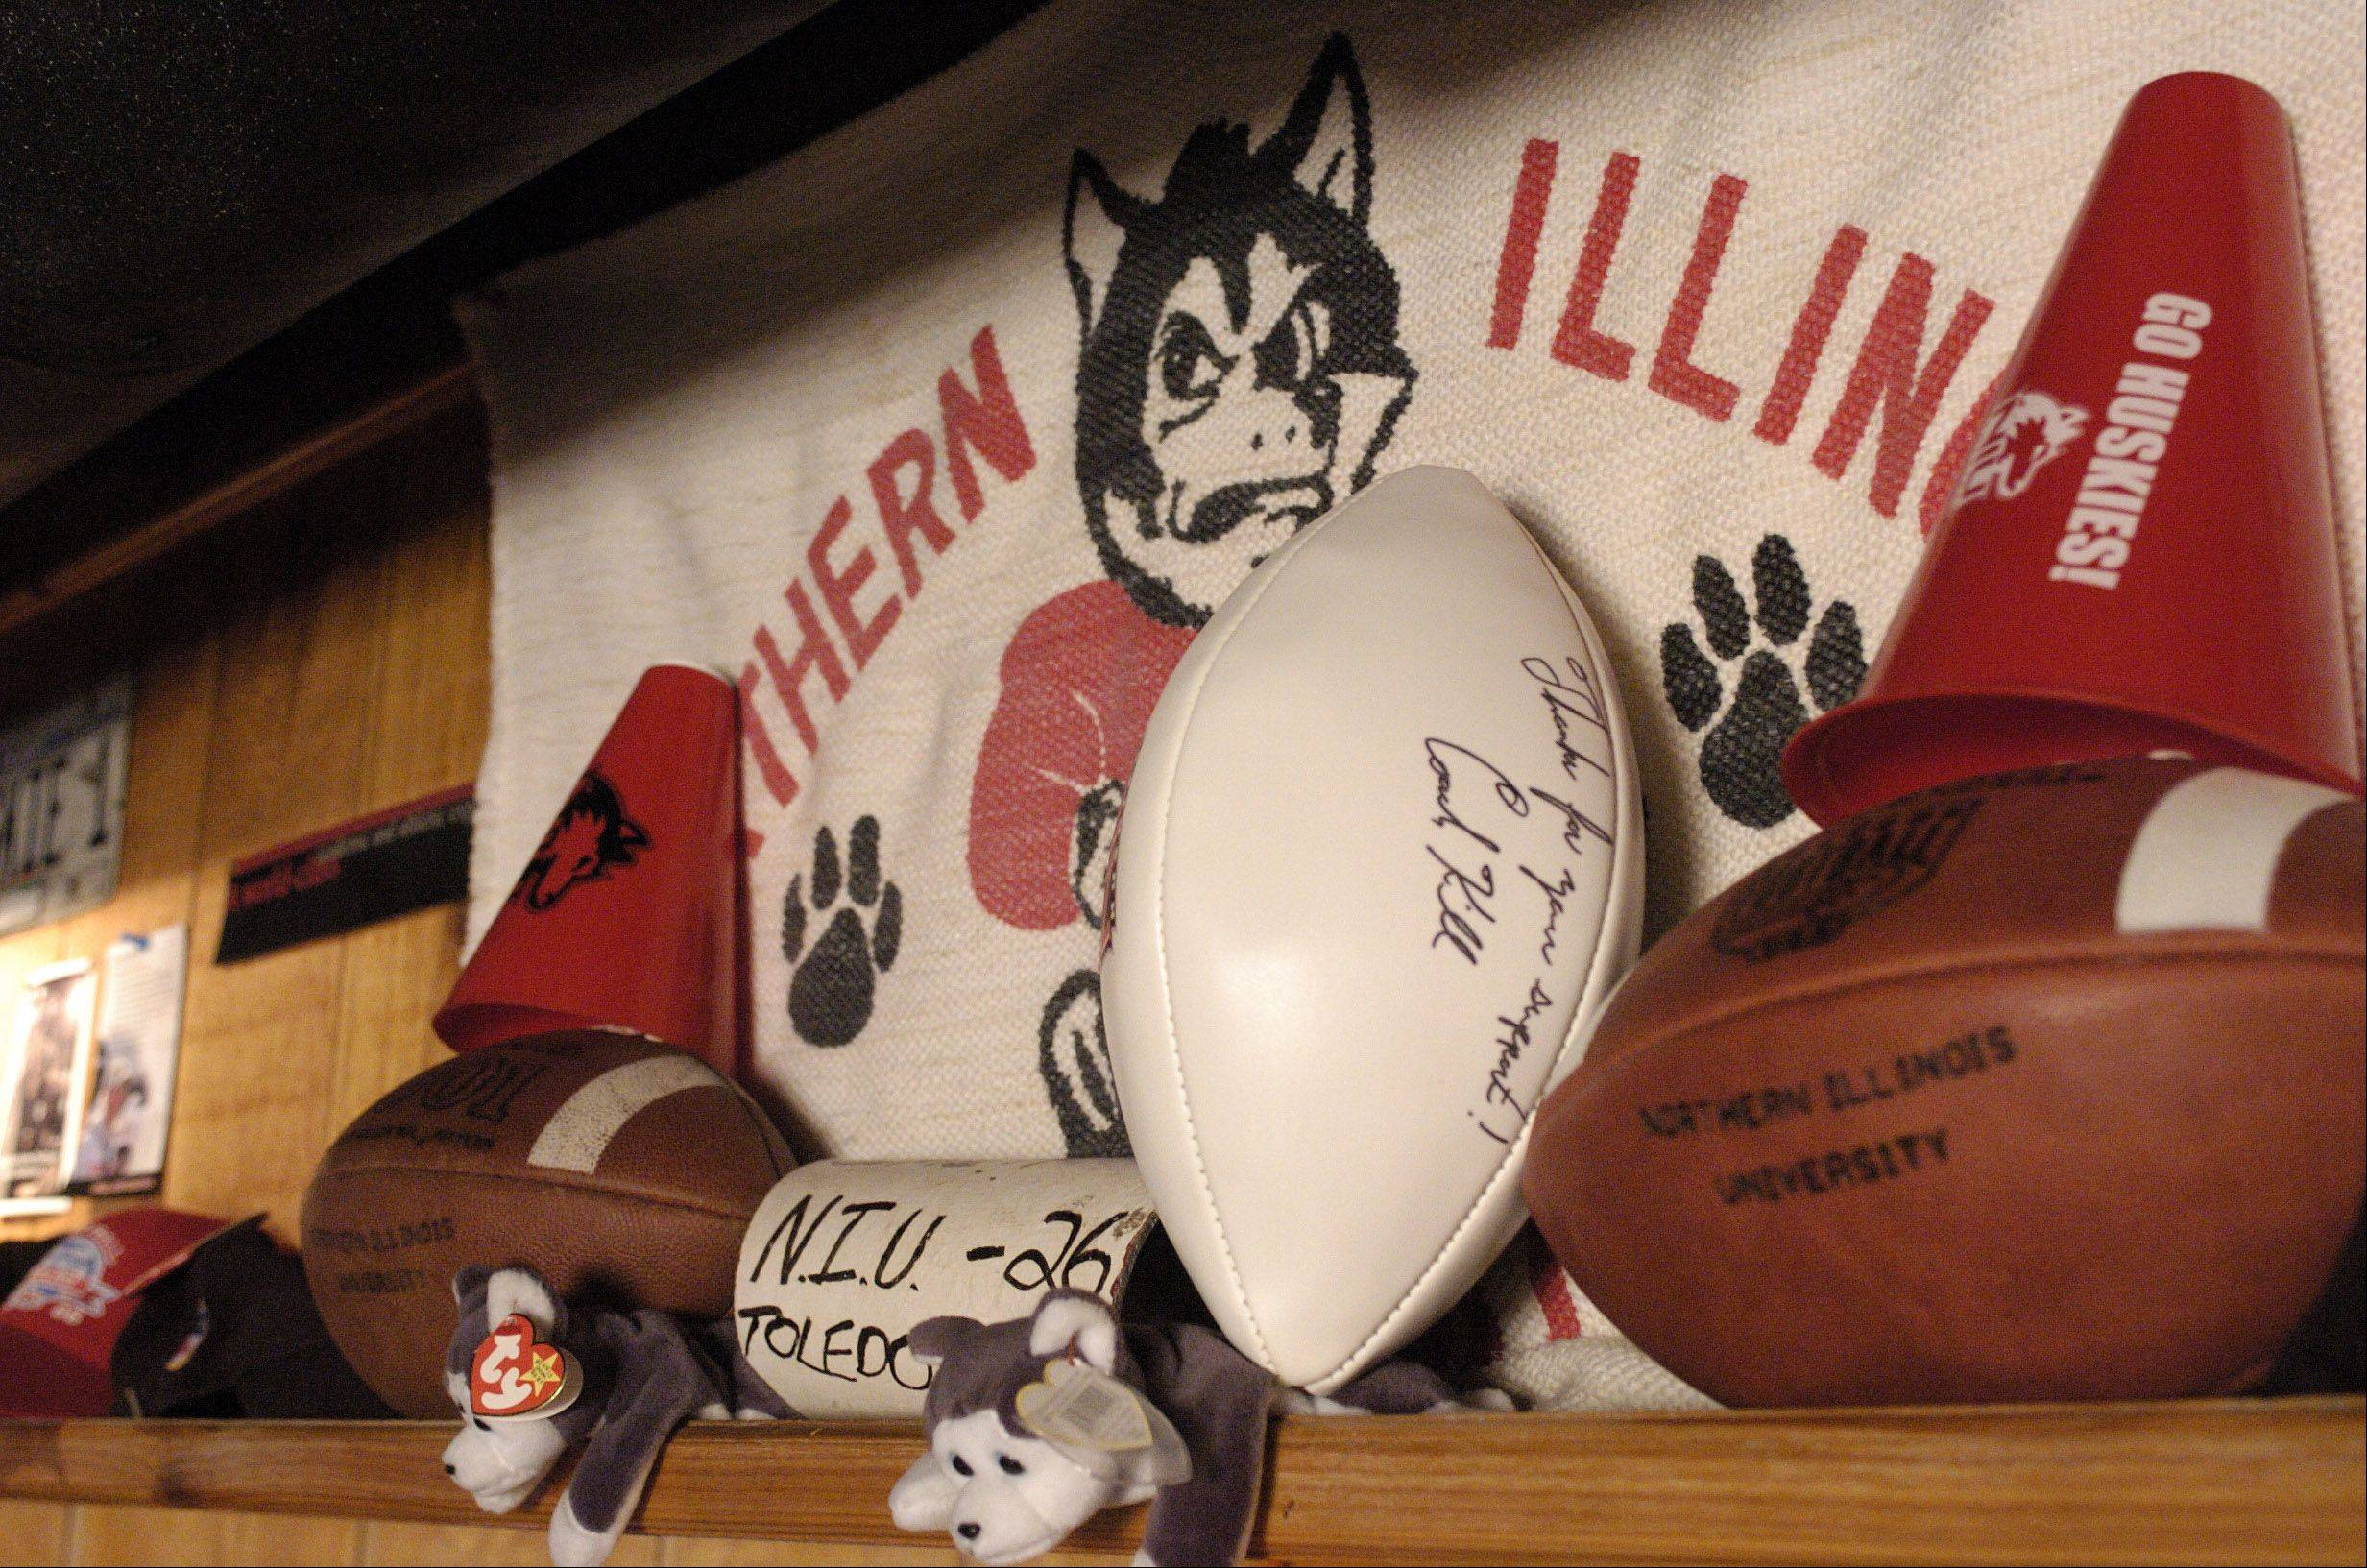 Northern Illinois University items are prominent in the basement of Dave LaCerra's Mount Prospect home.